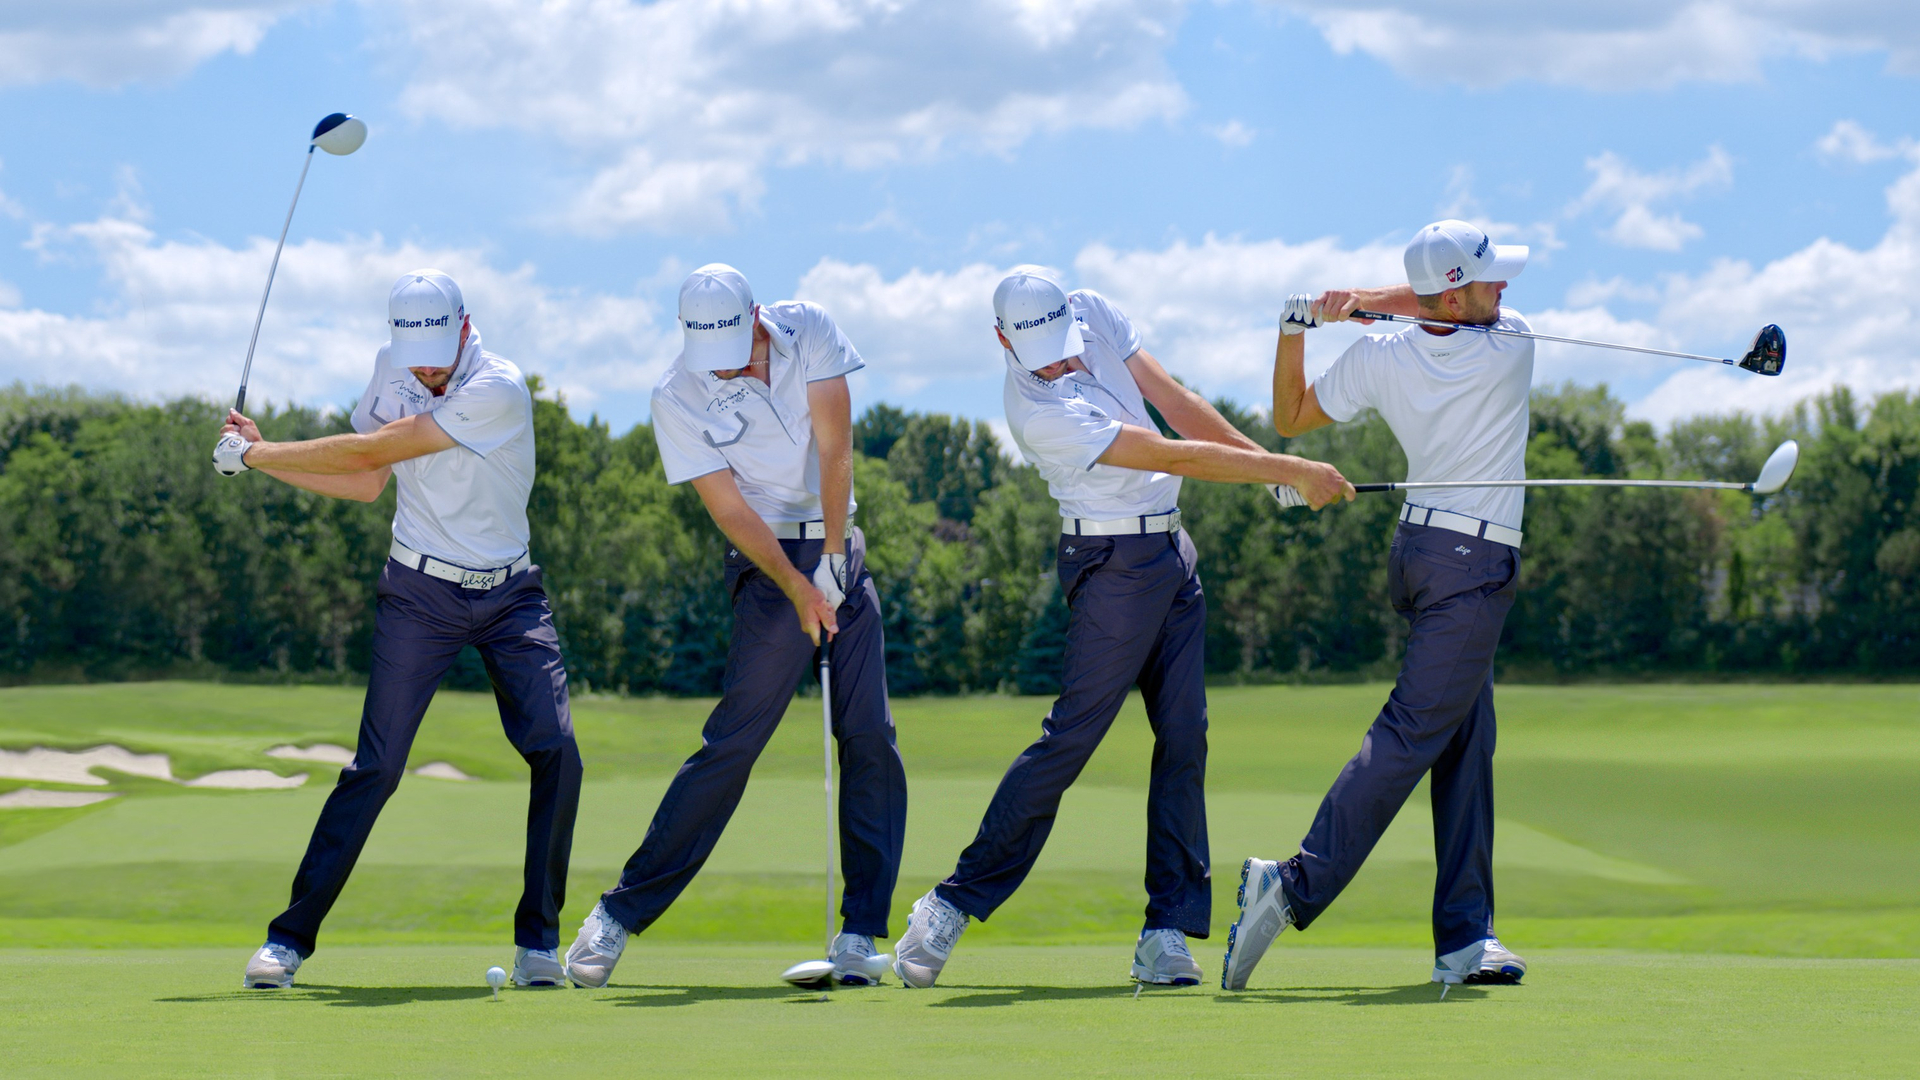 While creating rotational force is vital in movements like a golf swing or baseball pitch, resisting over-rotation is possibly more important to control the accuracy and repeatability of the skill.